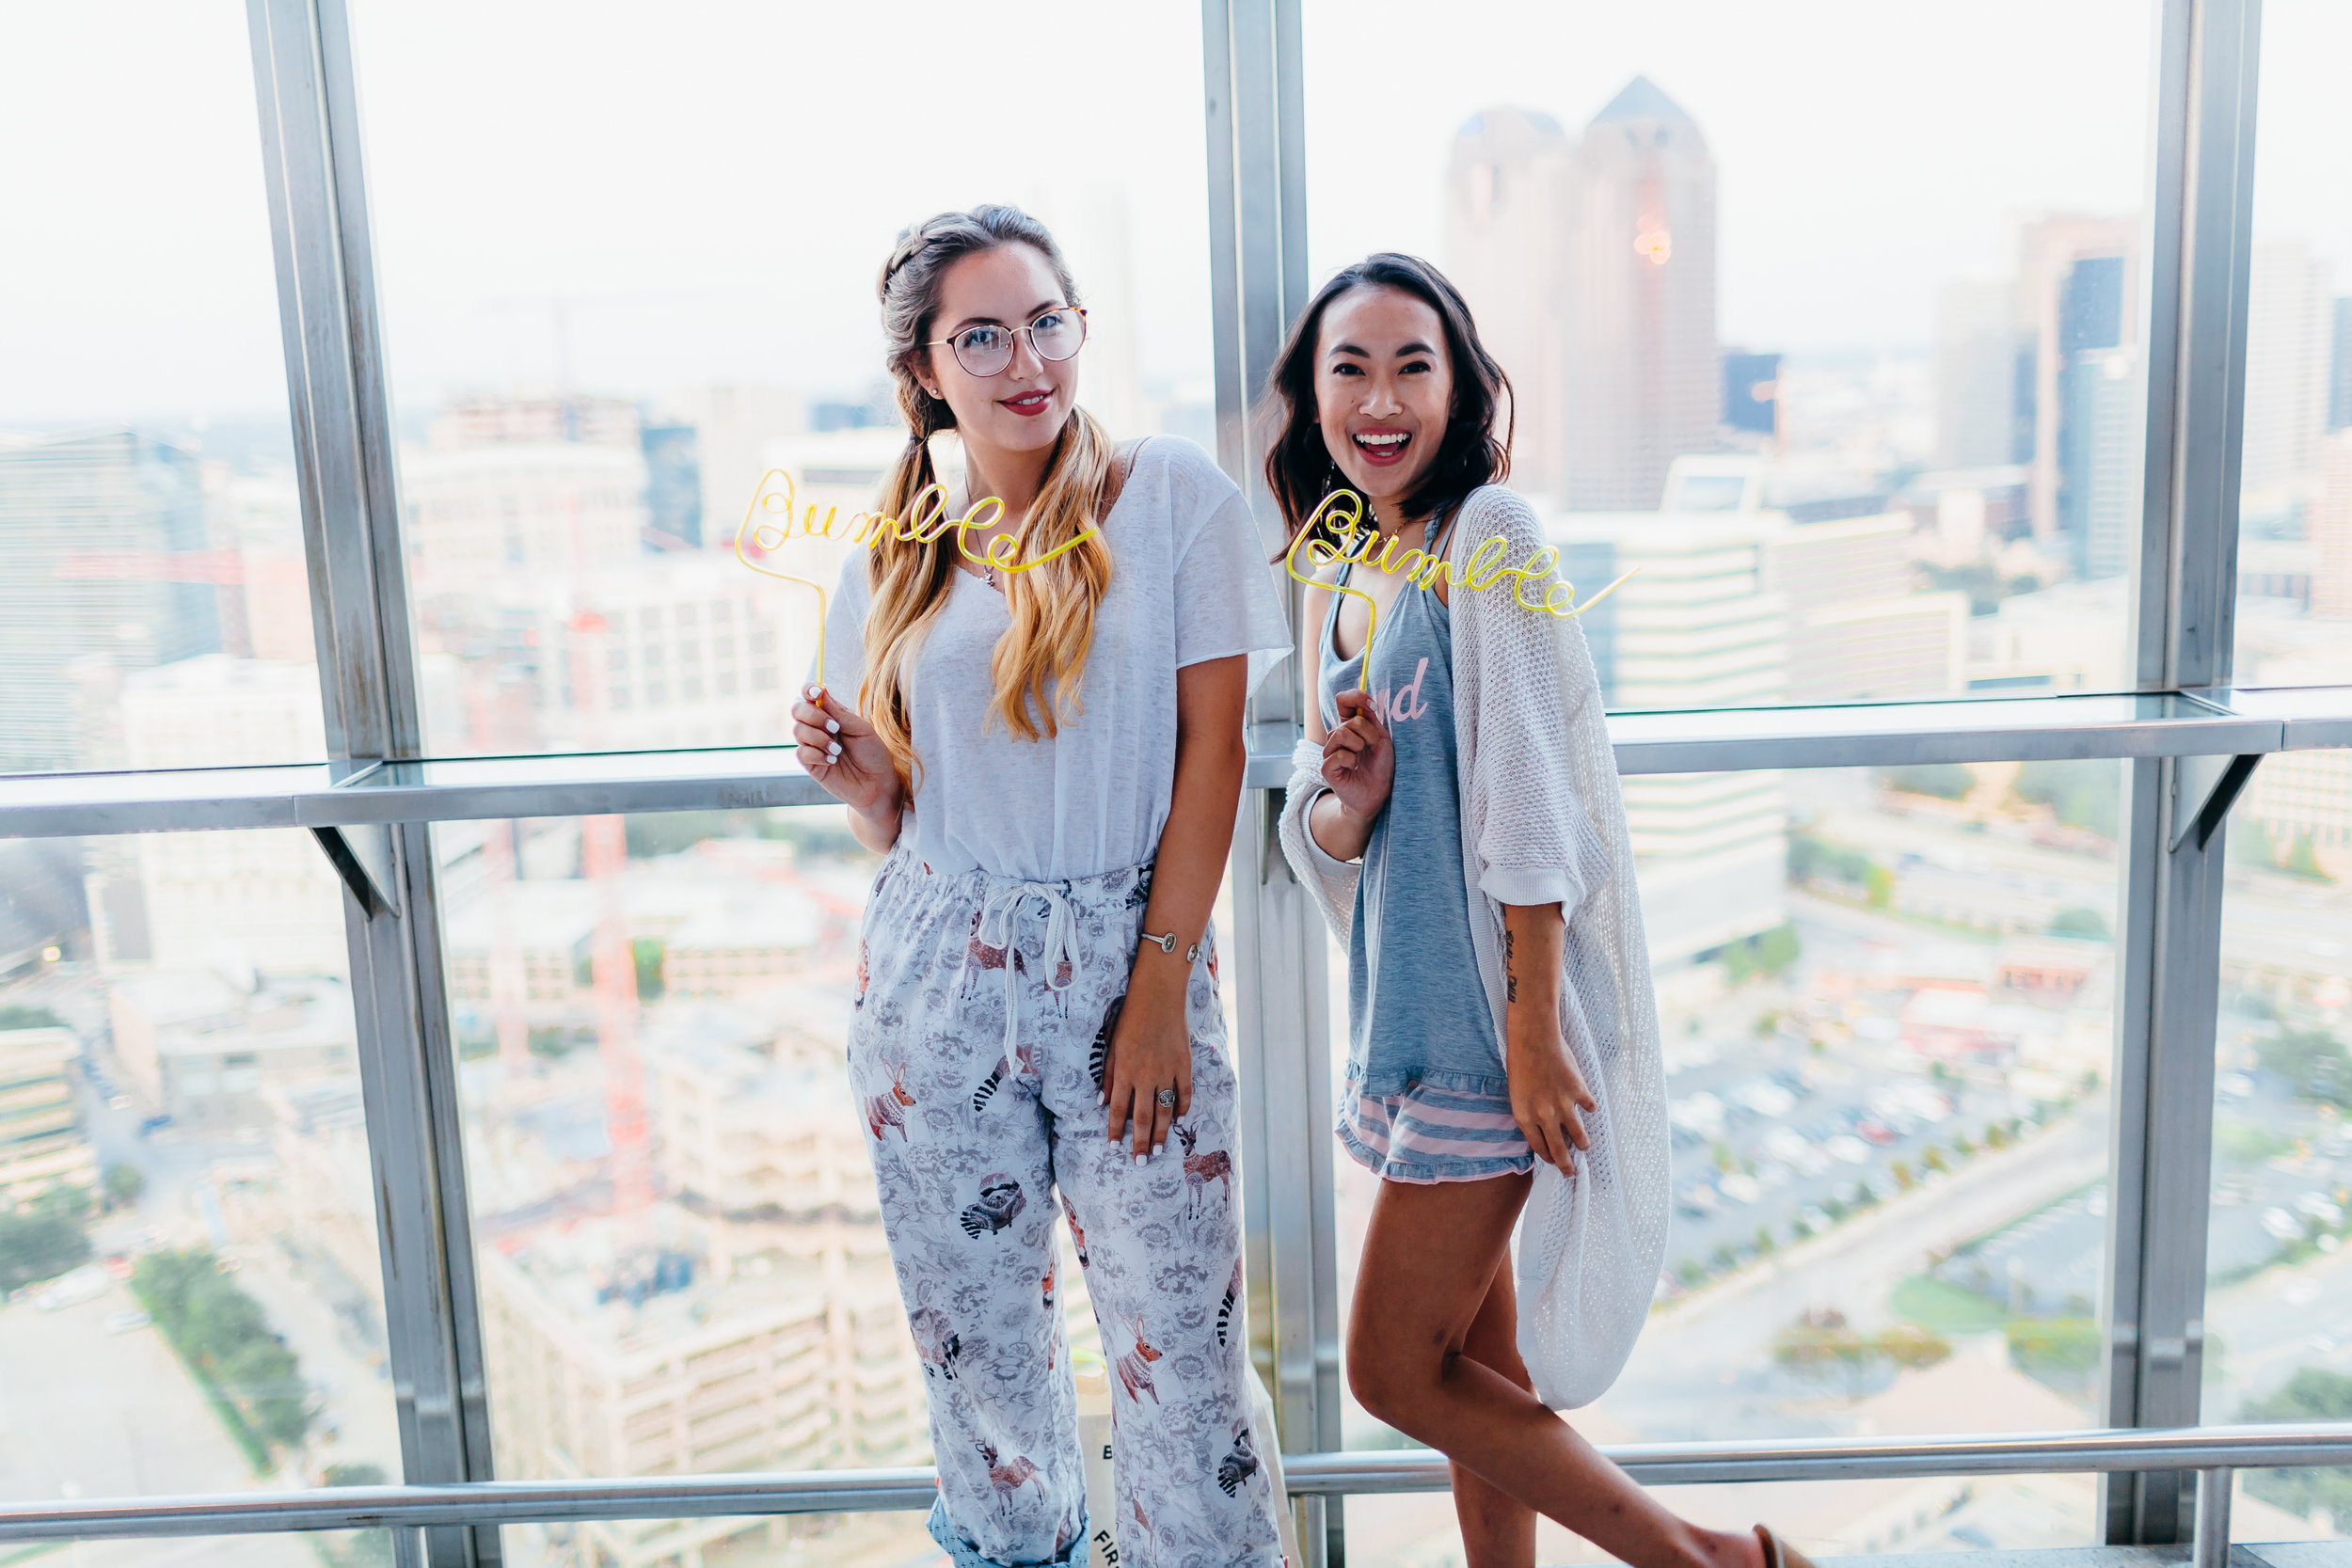 bumble-bff-dallas-launch-event-6465.jpg